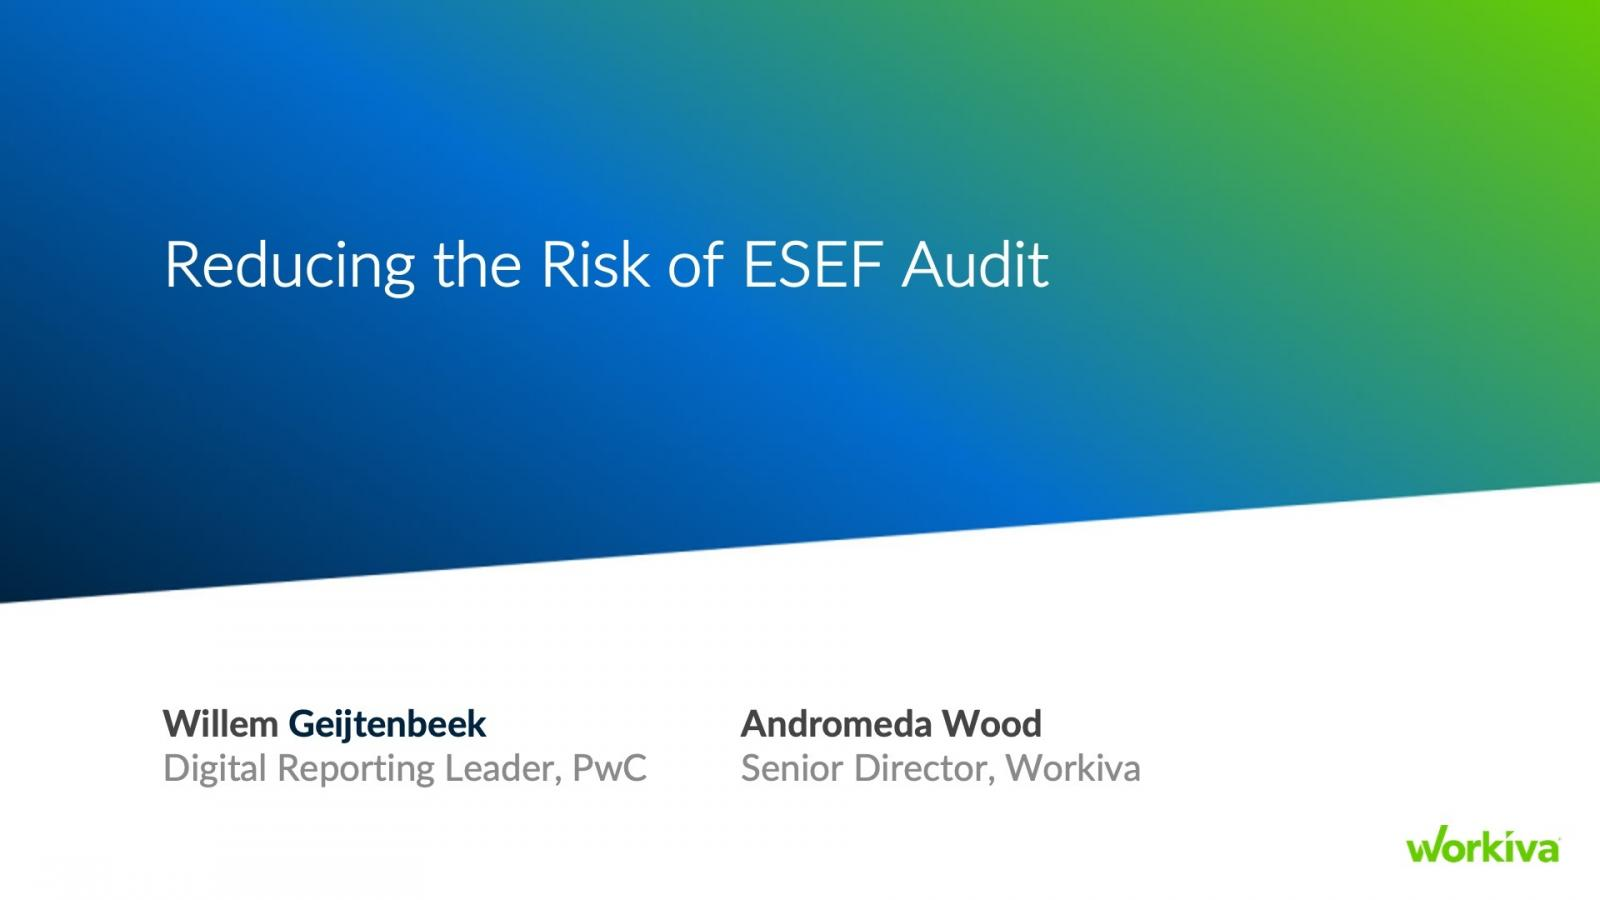 Reducing the Risk of ESEF Audit